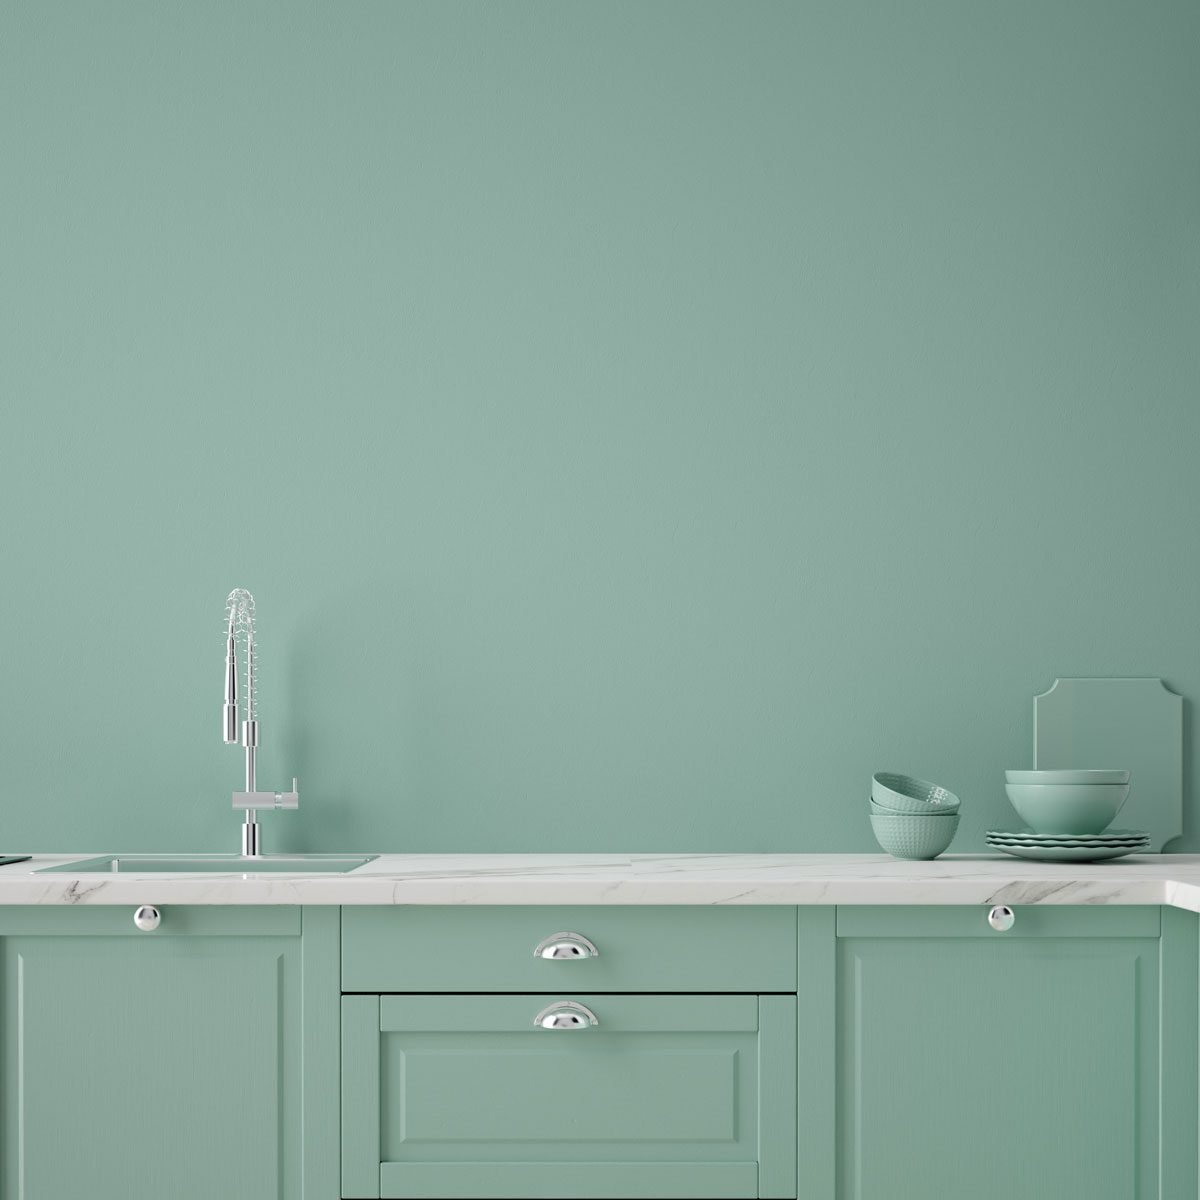 Matching green cabinets and walls